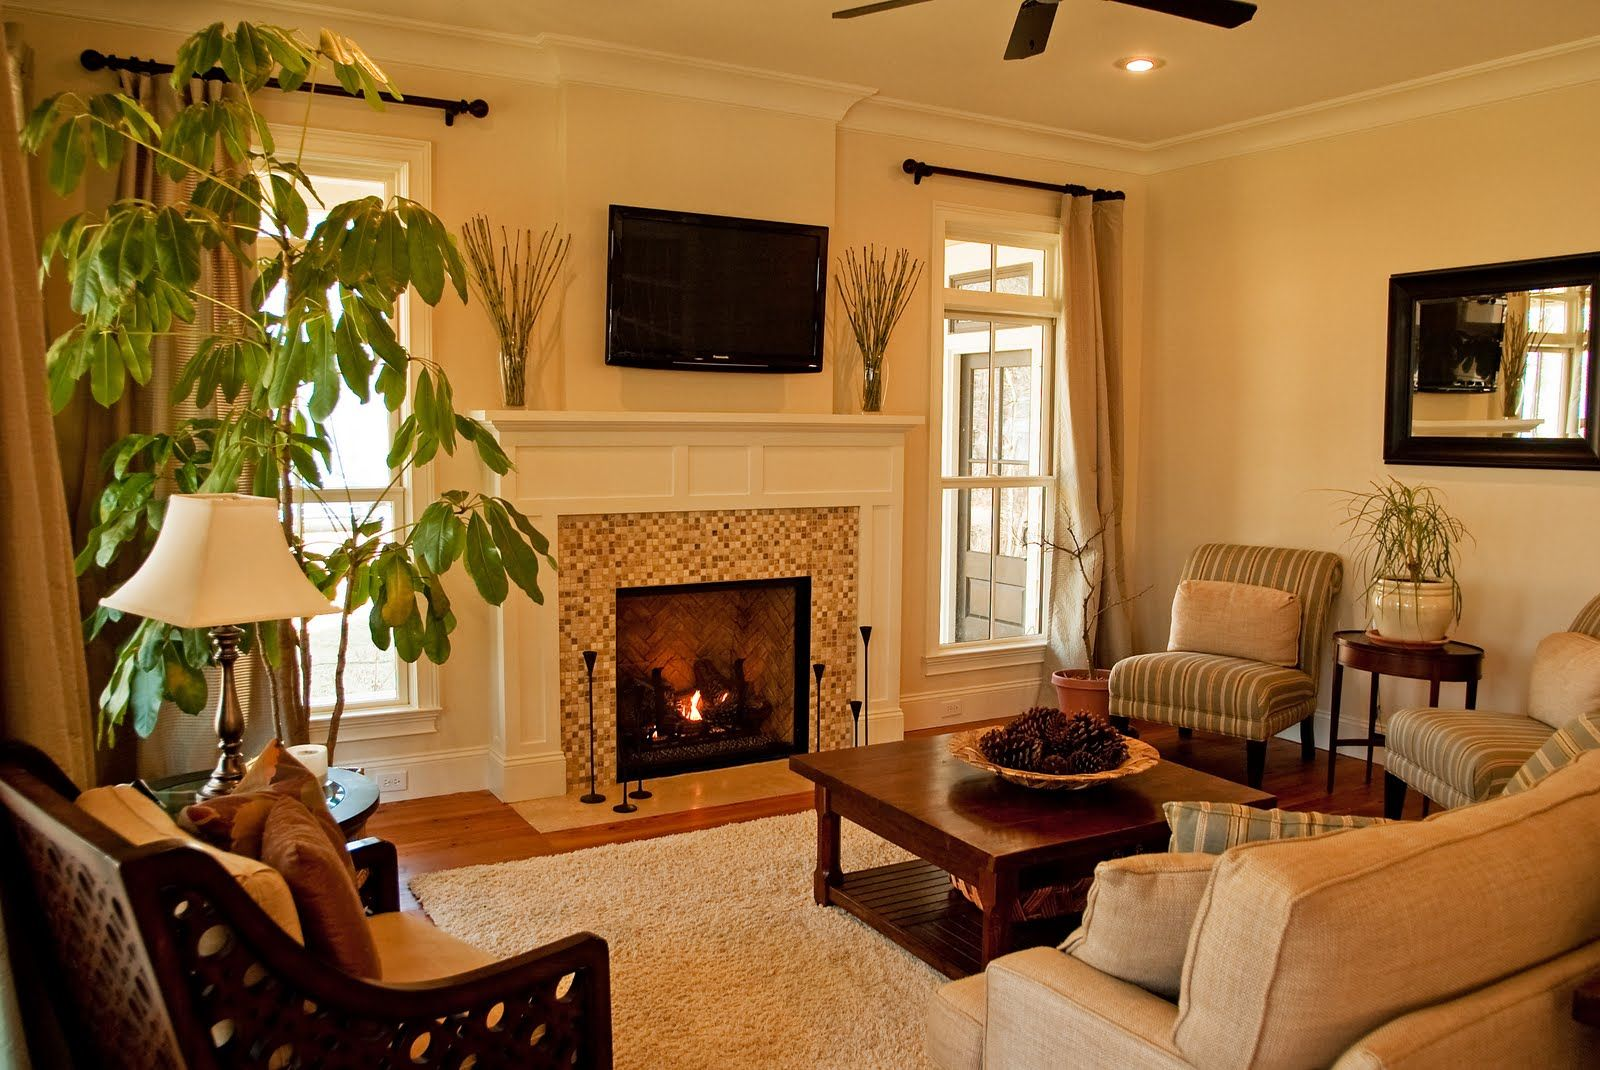 Decor Ideas For Living Room With Fireplace - Lavita Home